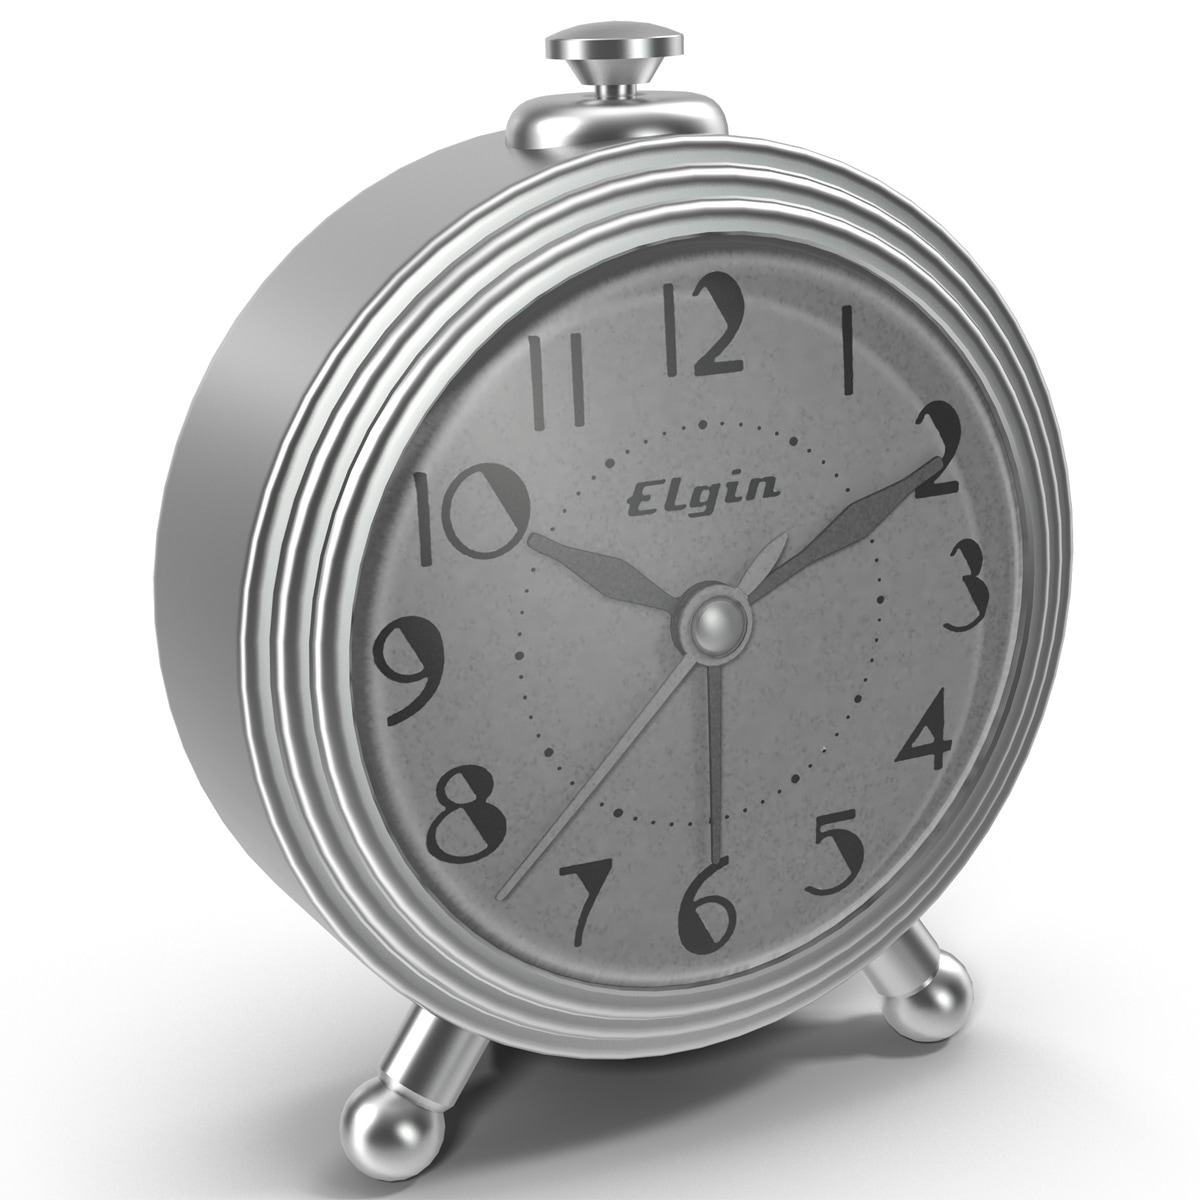 3ds max elgin tradiational alarm clock